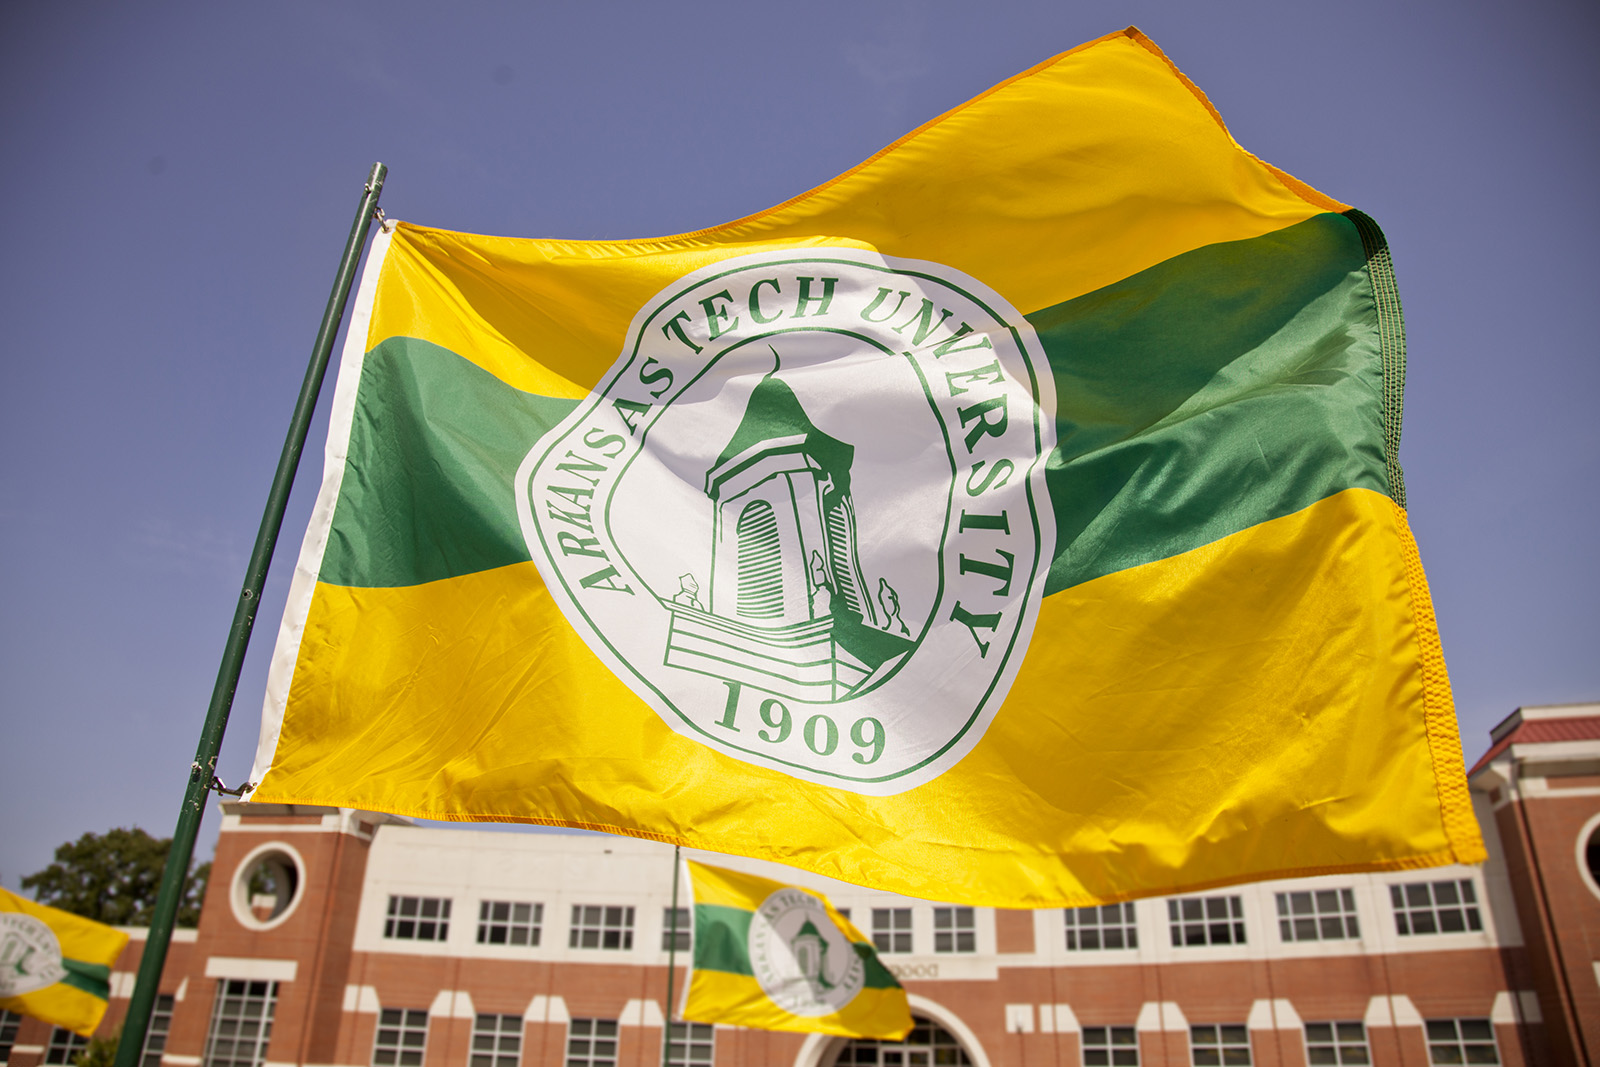 The Arkansas Tech University flag blowing in the wind